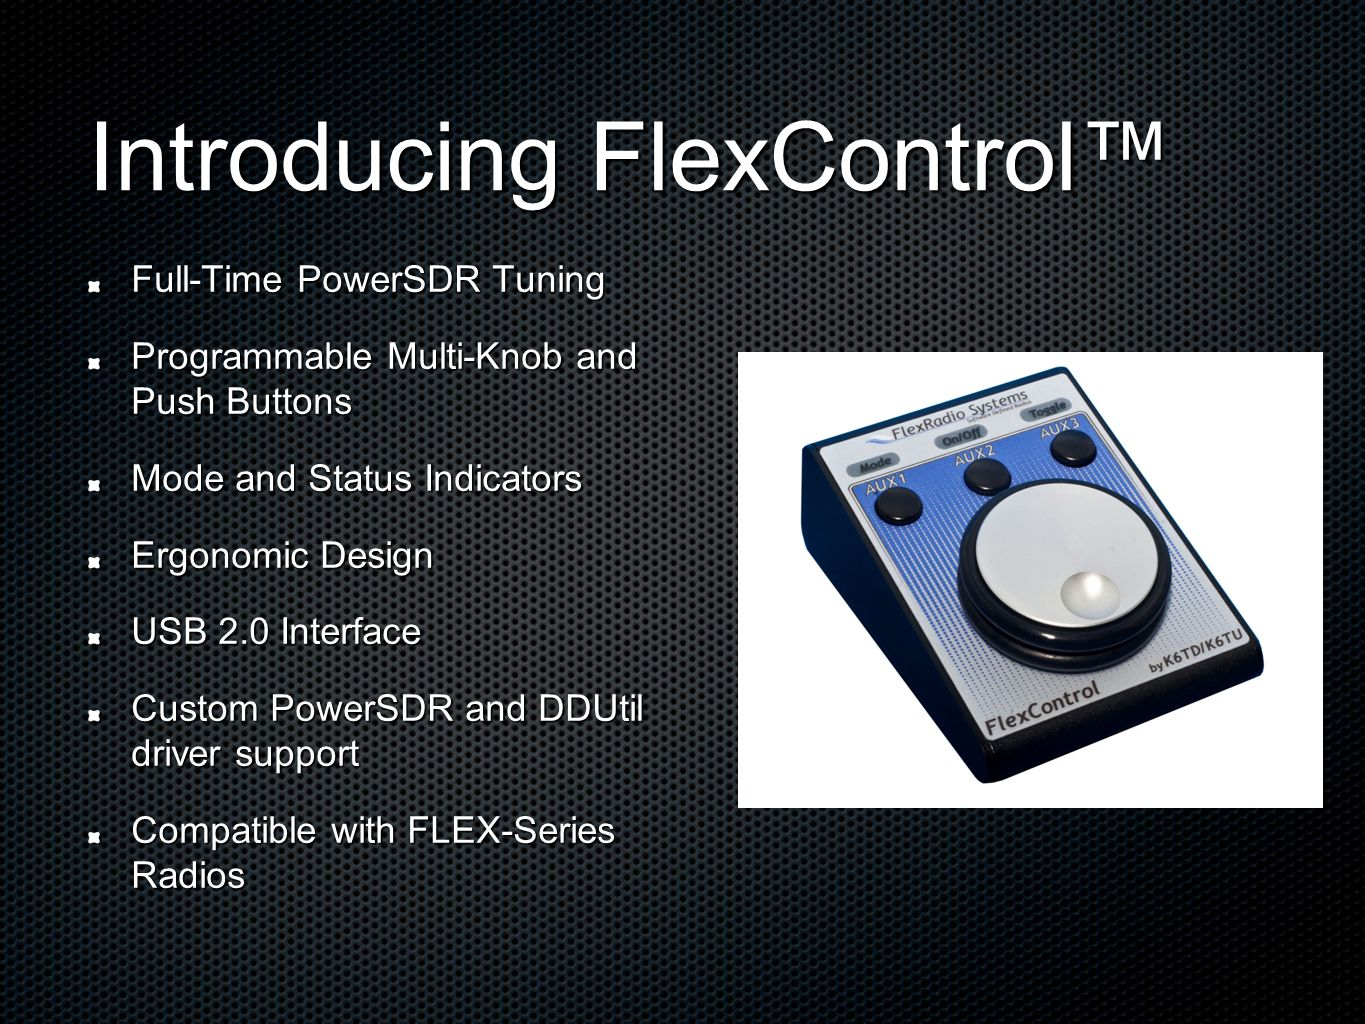 Introducing FlexControl™ Full-Time PowerSDR Tuning Programmable Multi-Knob and Push Buttons Mode and Status Indicators Ergonomic Design USB 2.0 Interface Custom PowerSDR and DDUtil driver support Compatible with FLEX-Series Radios